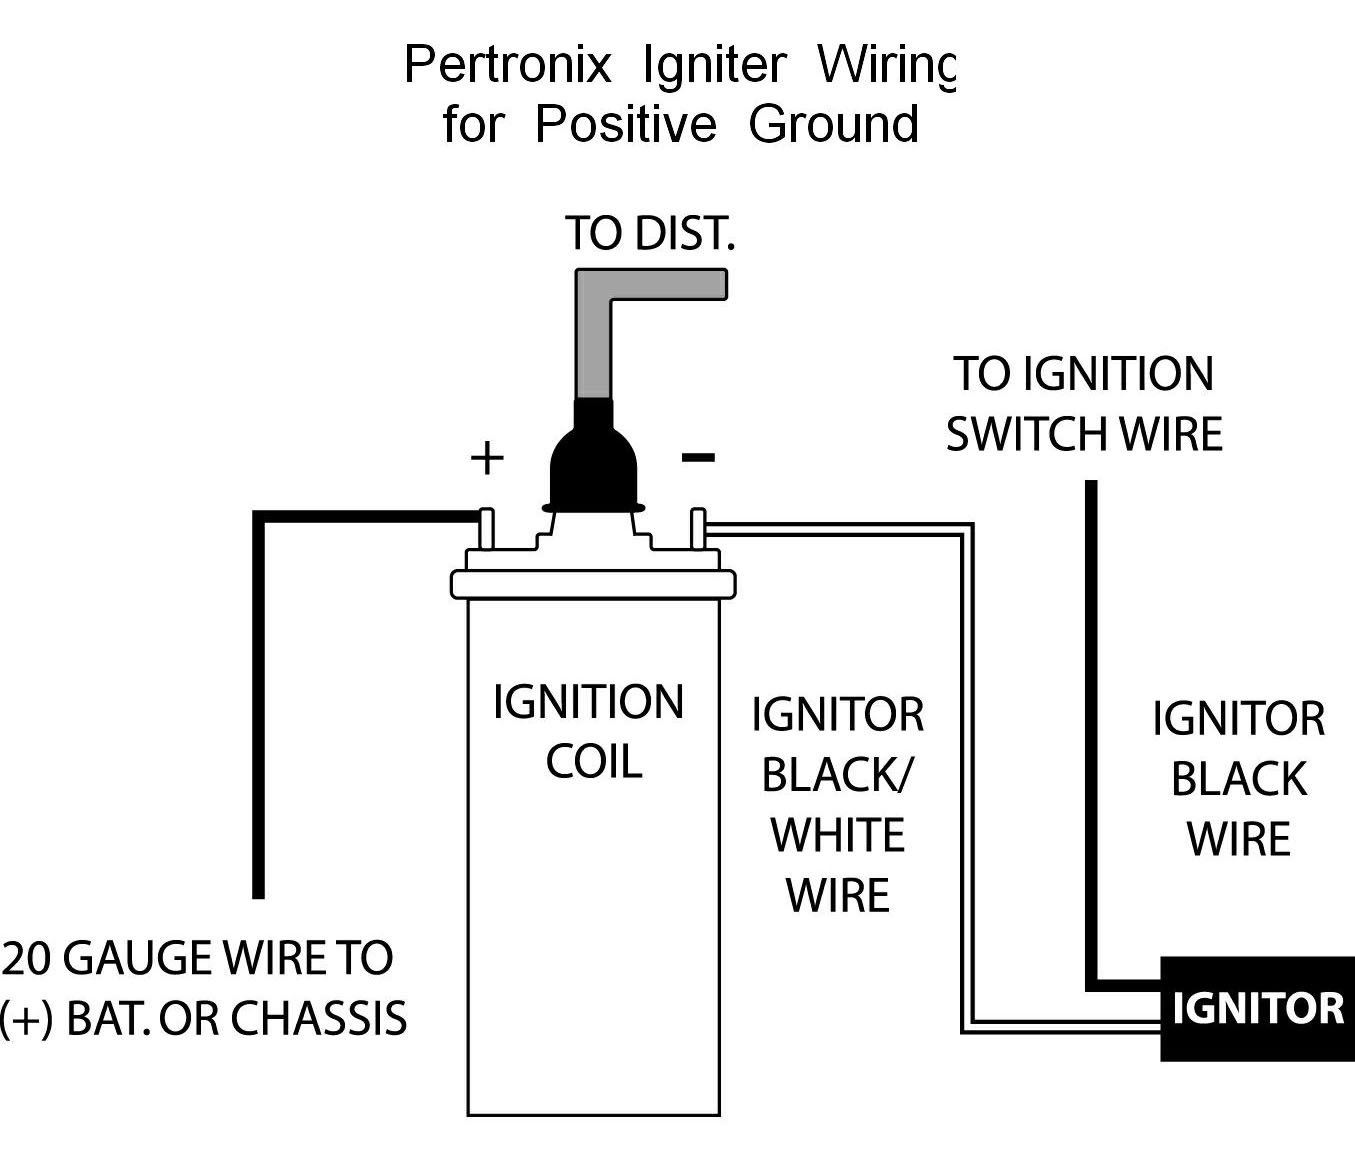 12v positive ground wiring diagram 32asyaunitedde